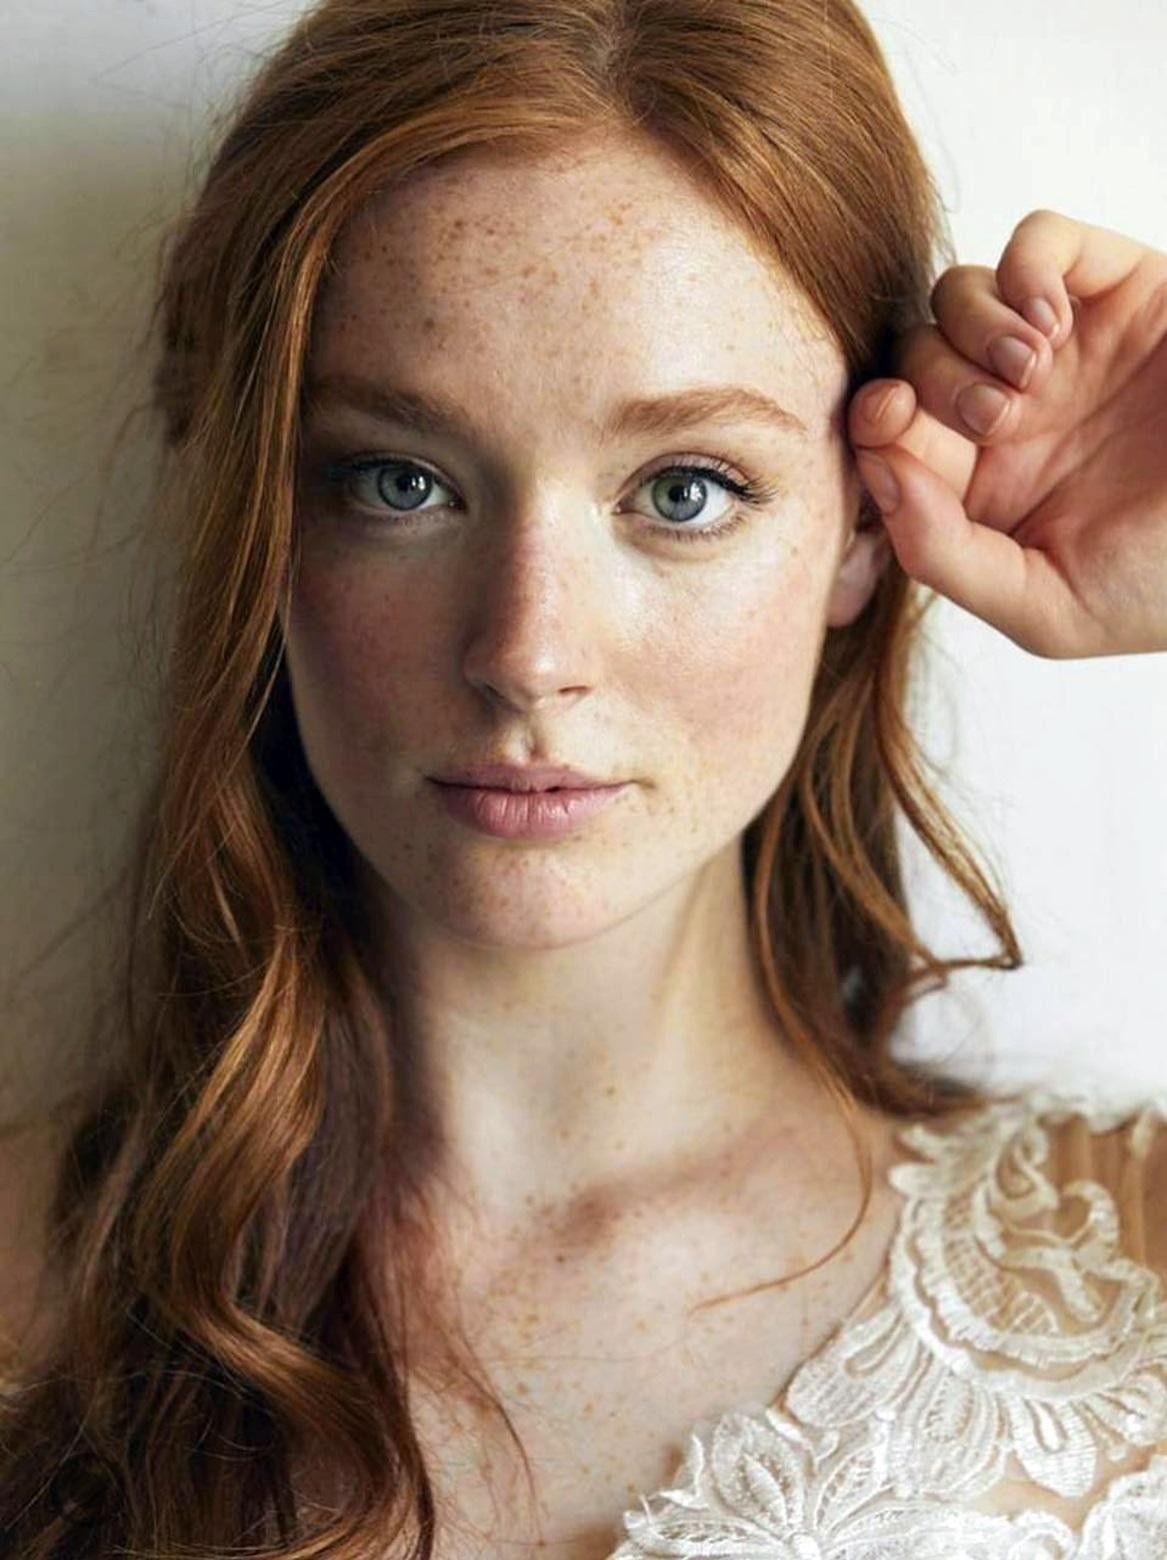 Pin by tezcanturan on çil pinterest redheads red heads and red hair